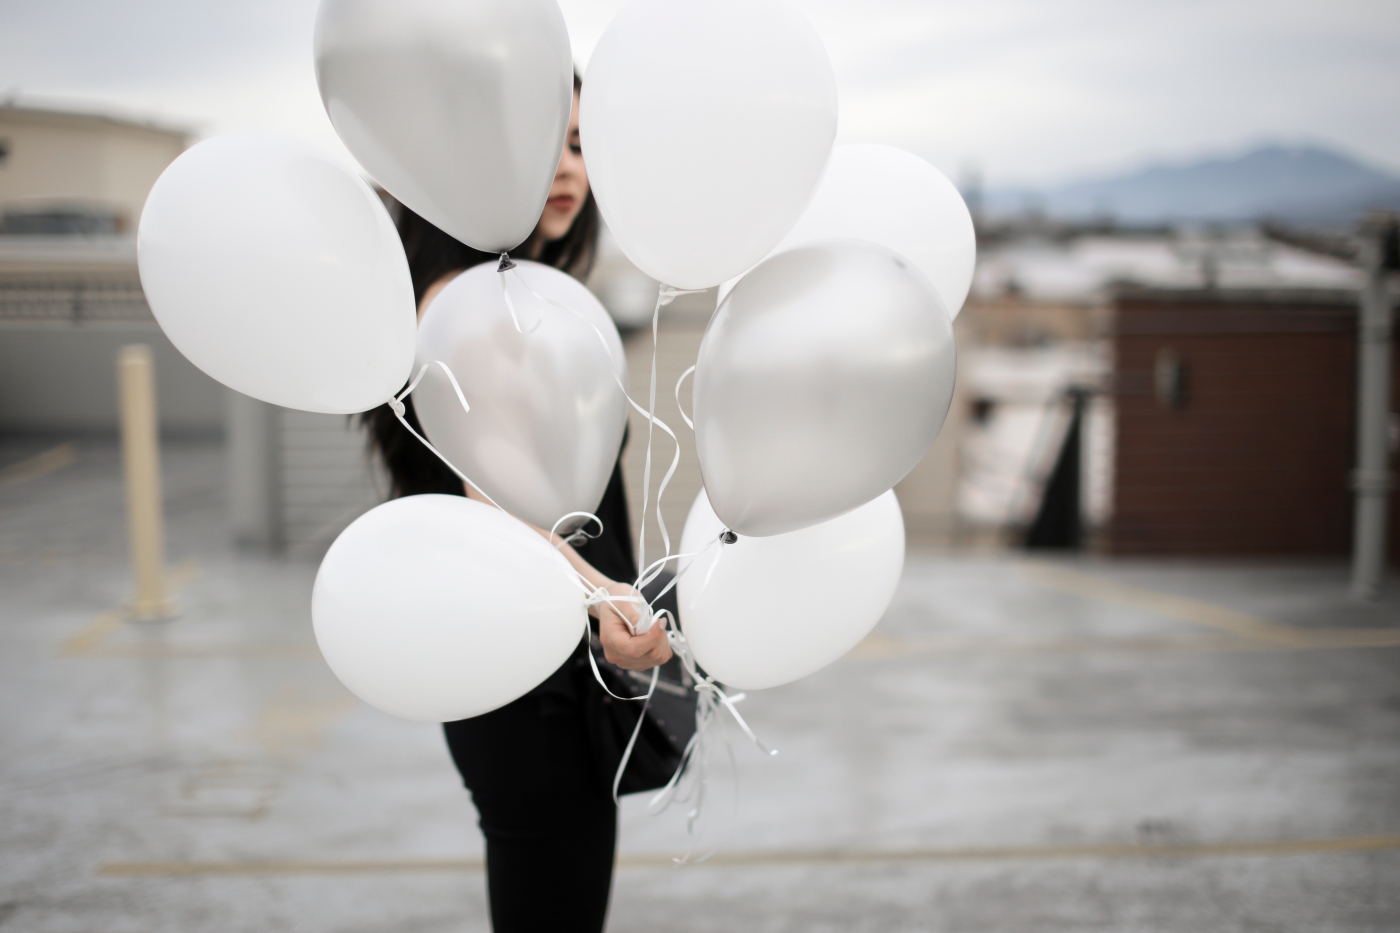 fashion blogger carrying balloons on a parking garage. Wearing black flared jeans, Daniel Wellington watch, and lace up heels.